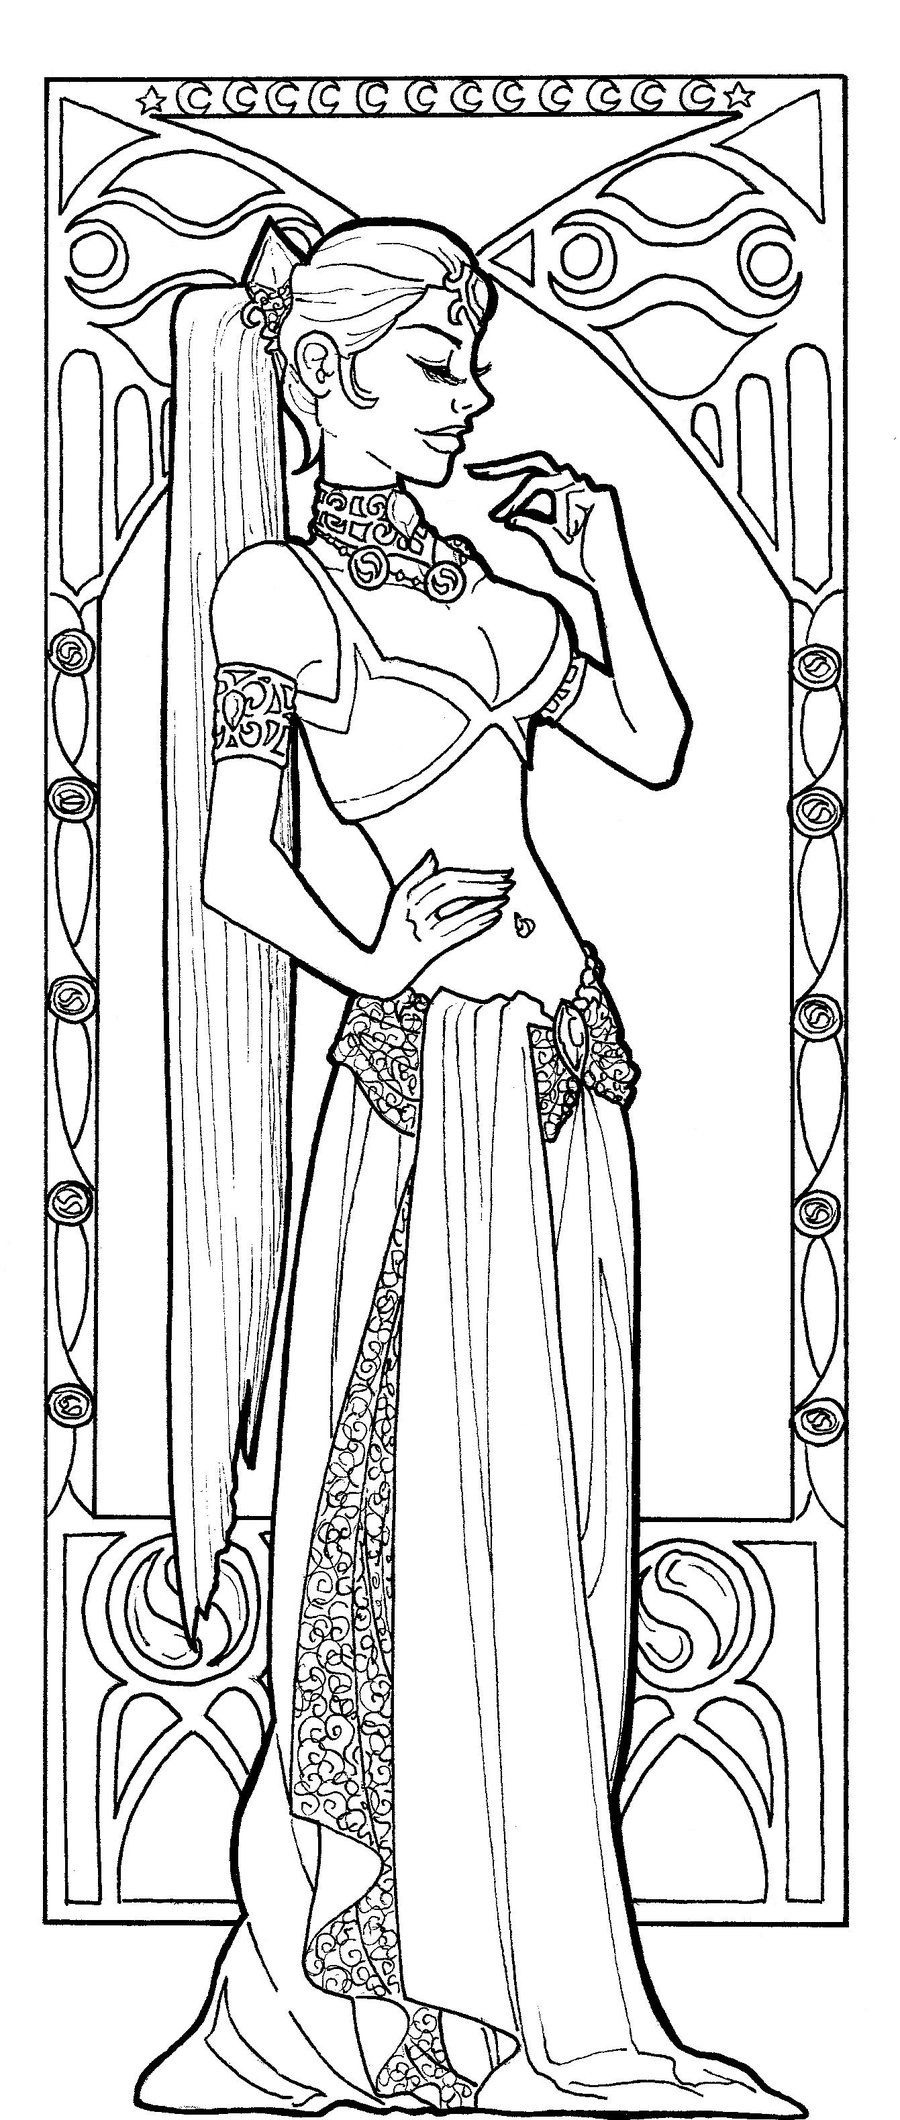 Art nouveau coloring pages to download and print for free | art ...